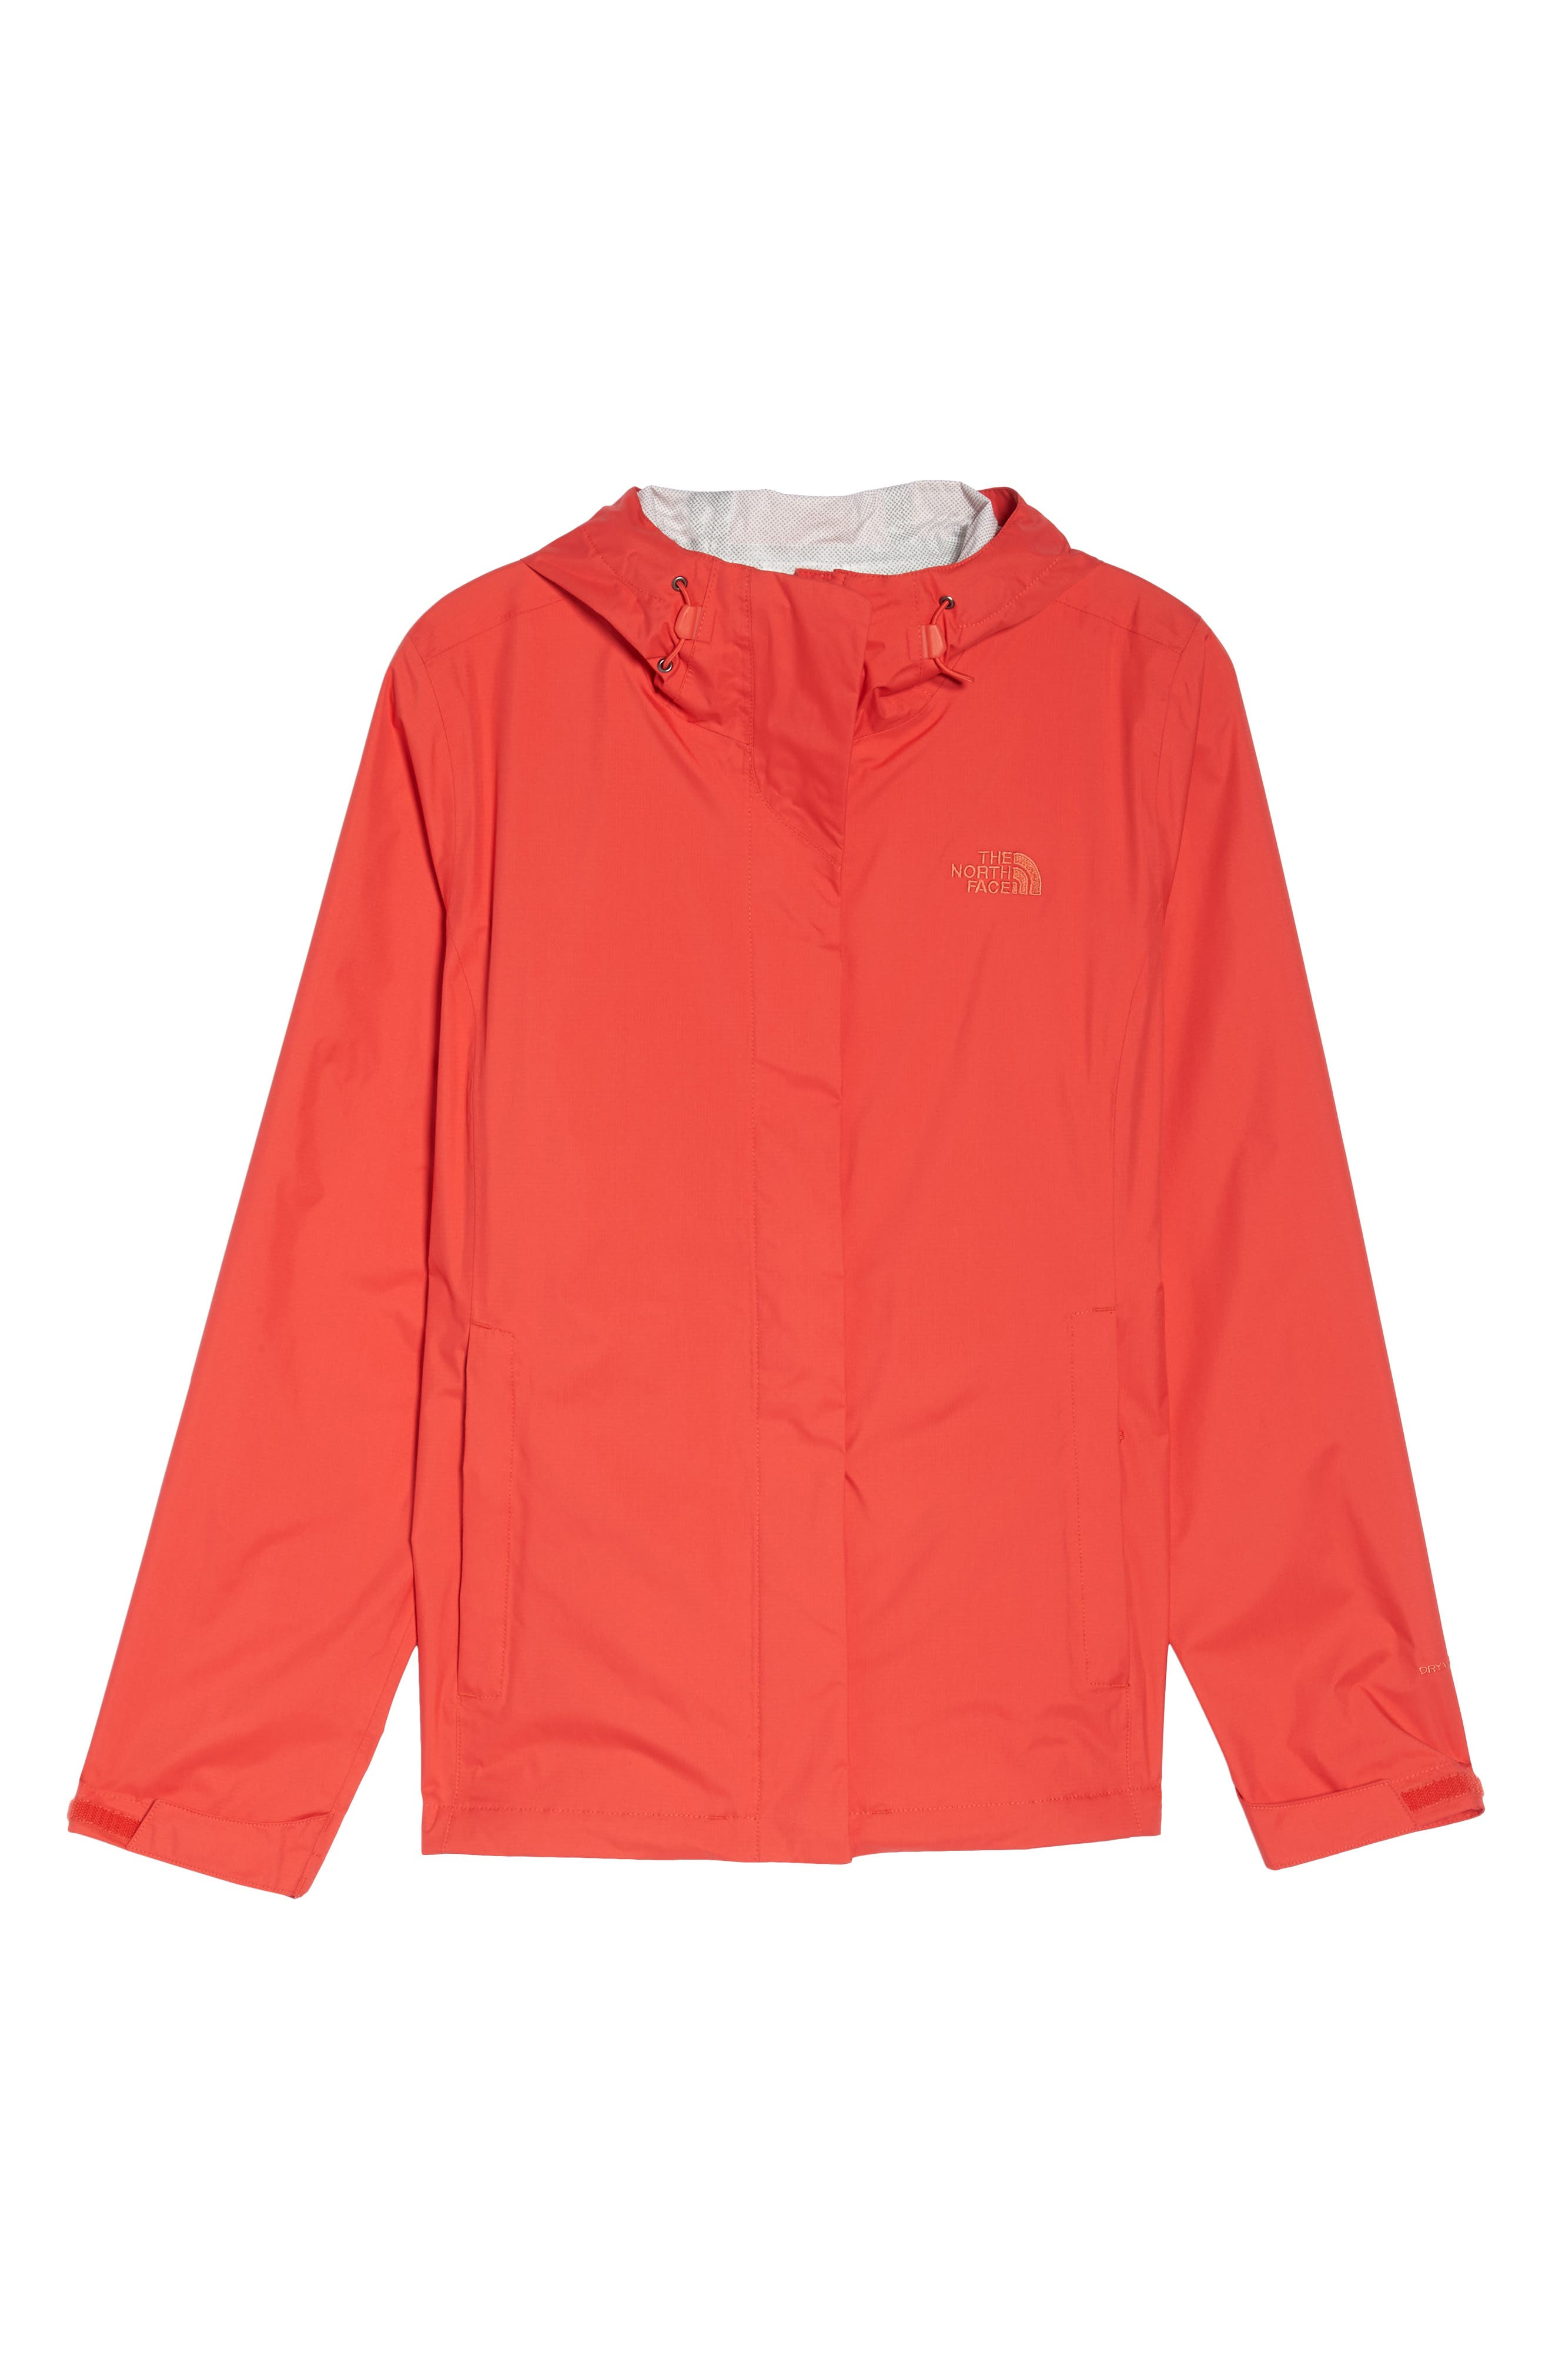 THE NORTH FACE, Venture 2 Waterproof Jacket, Alternate thumbnail 6, color, JUICY RED